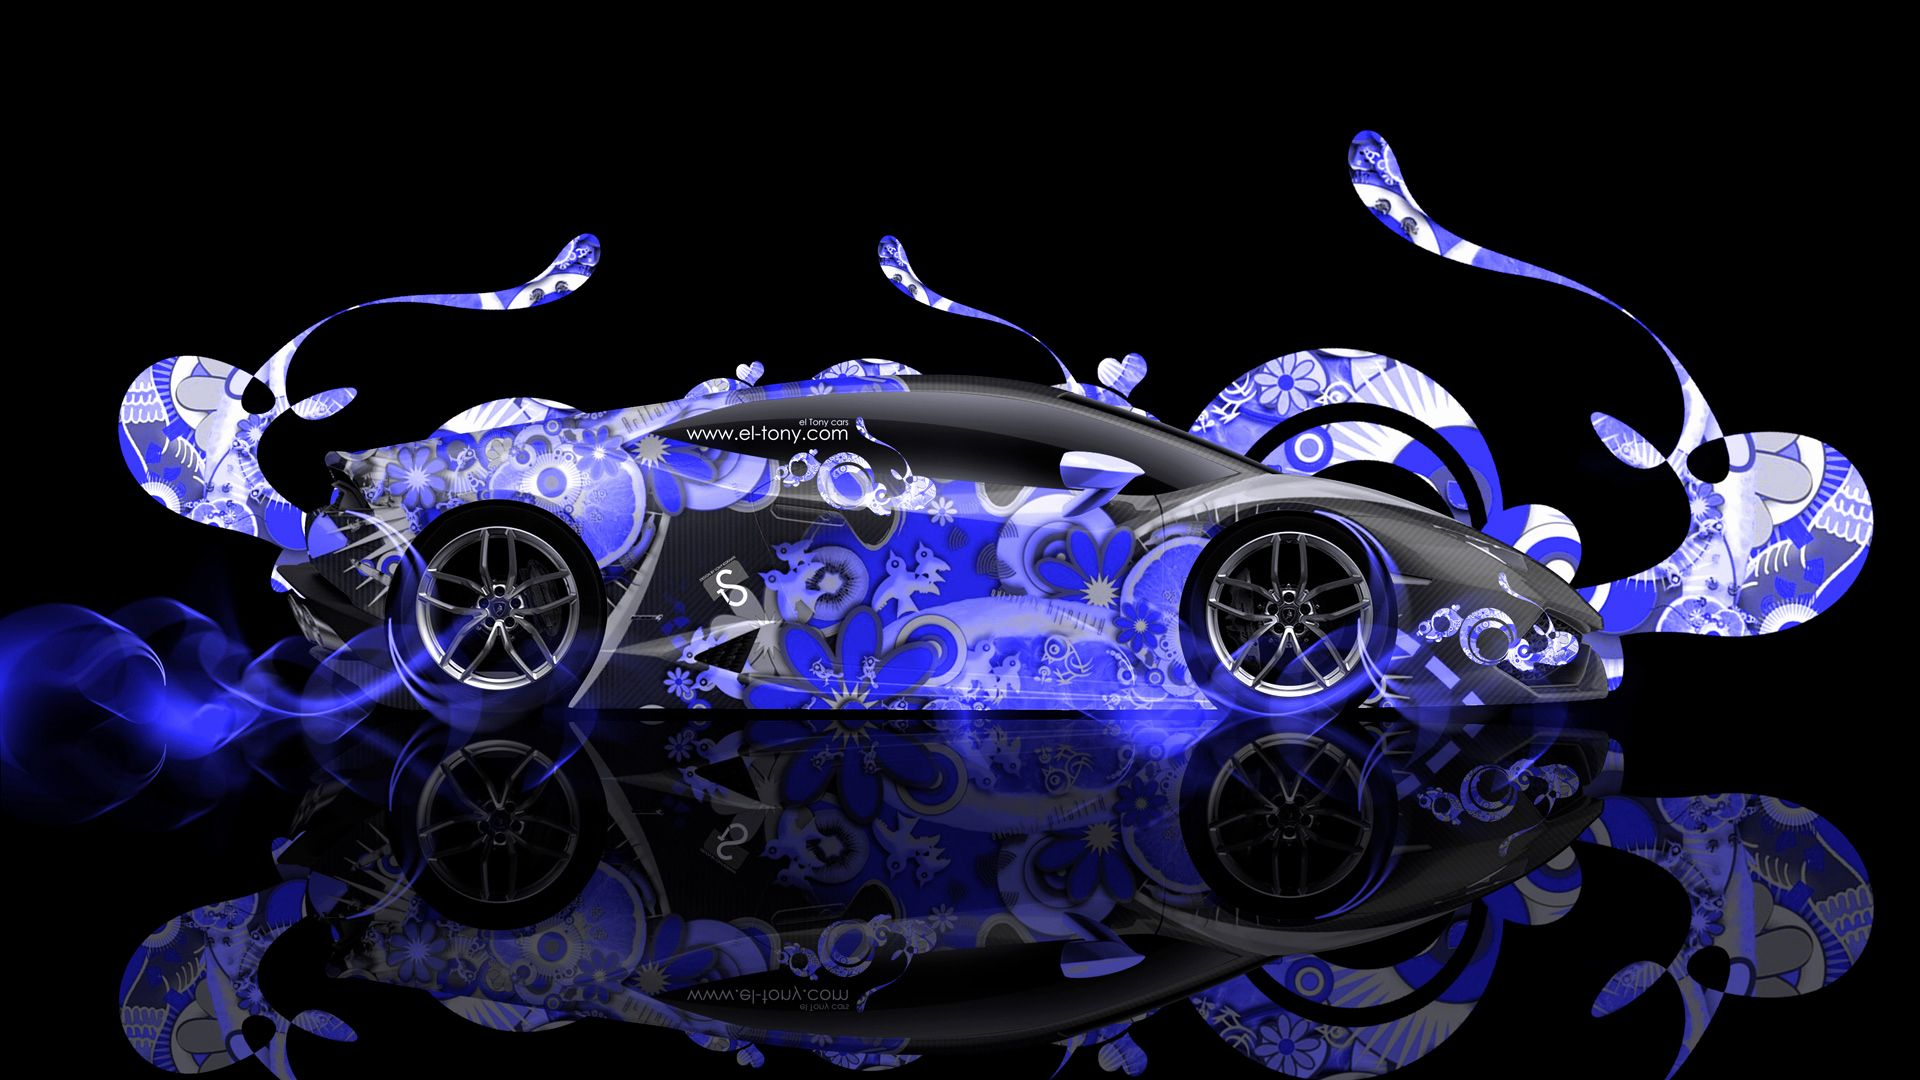 Cool Neon Cars Wallpapers - Top Free Cool Neon Cars ...